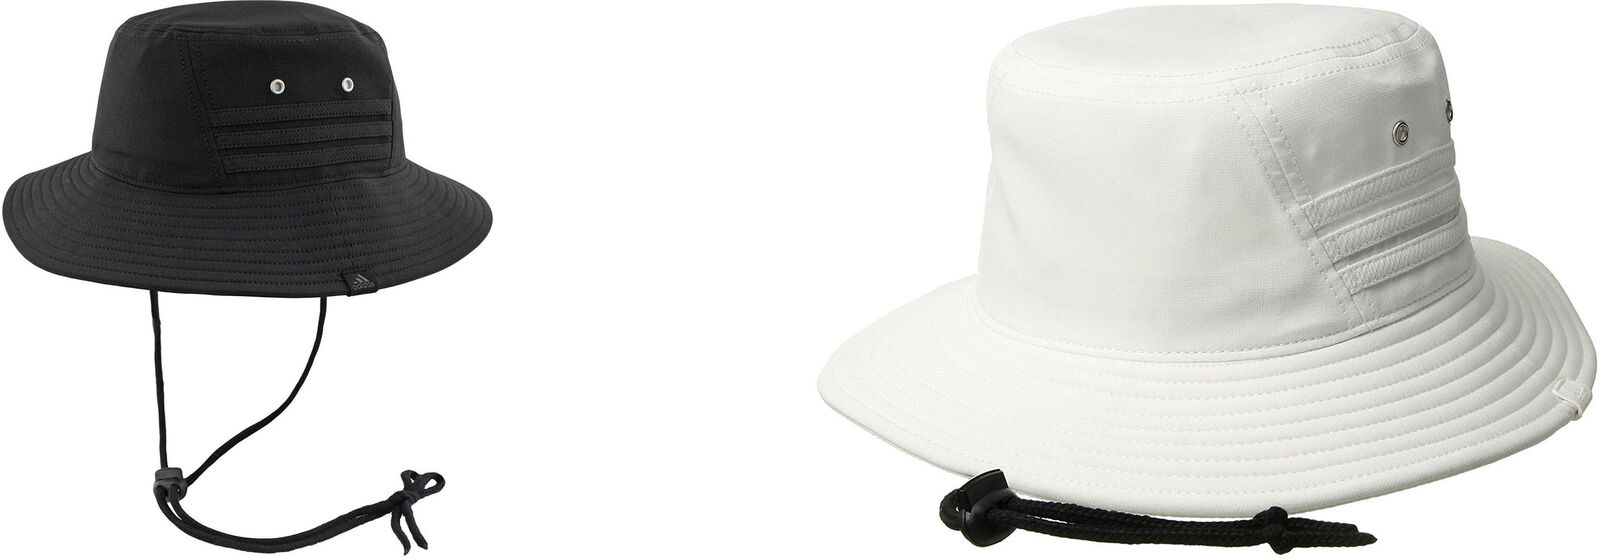 1628b32235 Details about adidas Men's Victory II Bucket Hat, 2 Colors